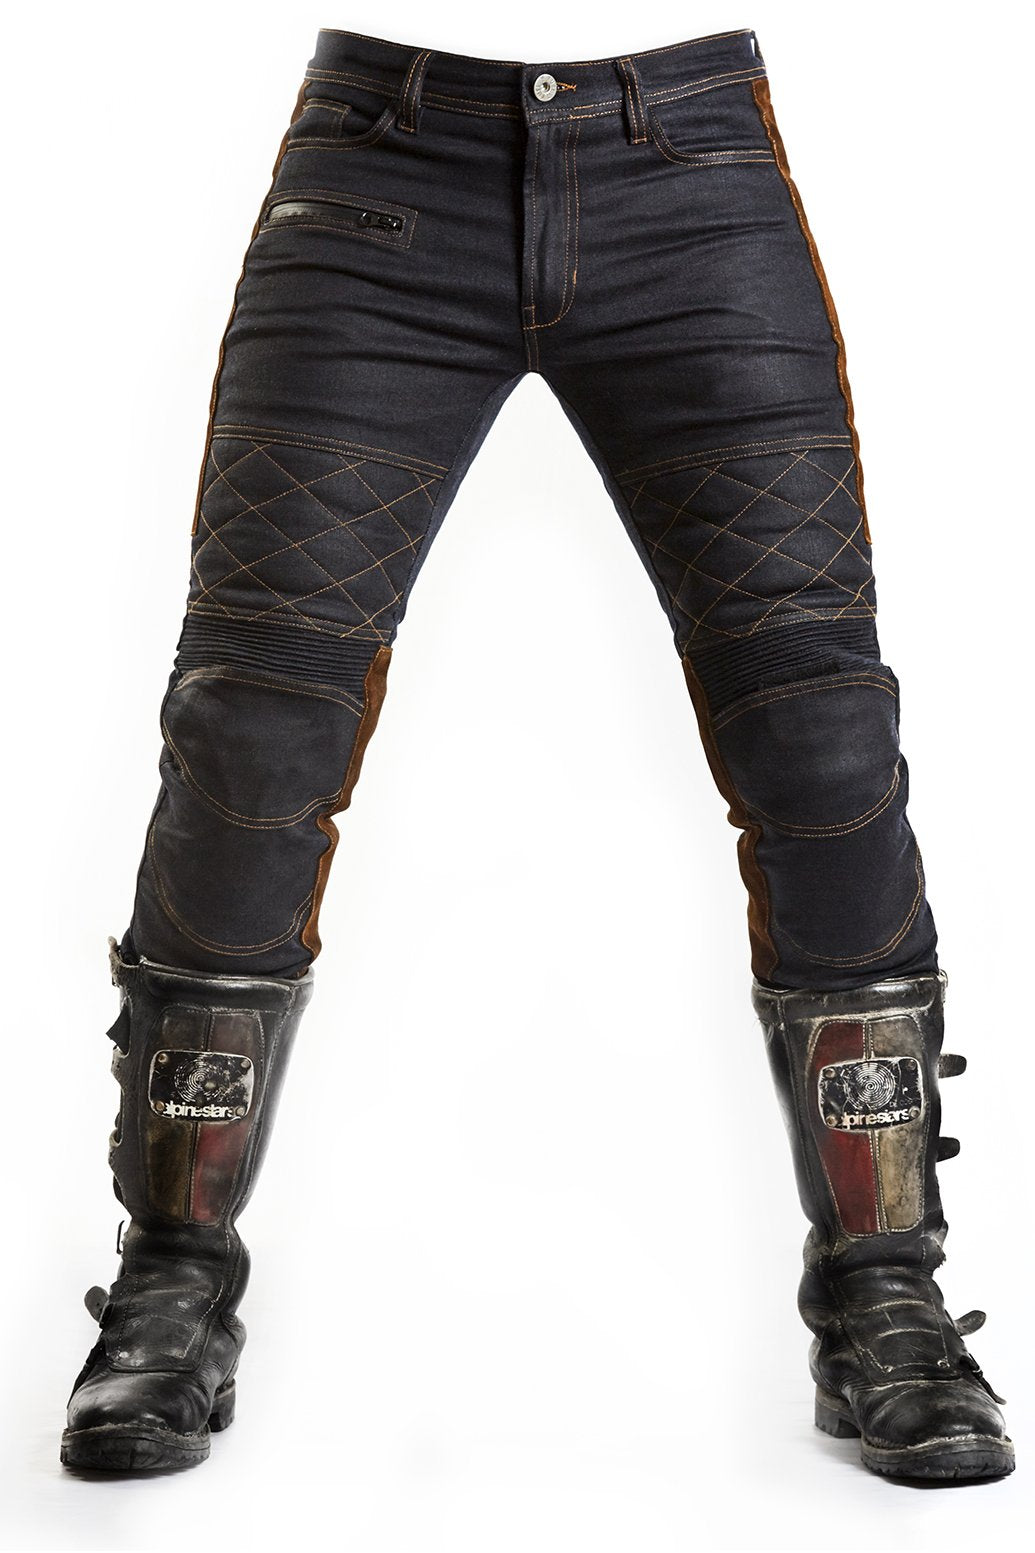 Fuel Sergeant Pant - Waxed